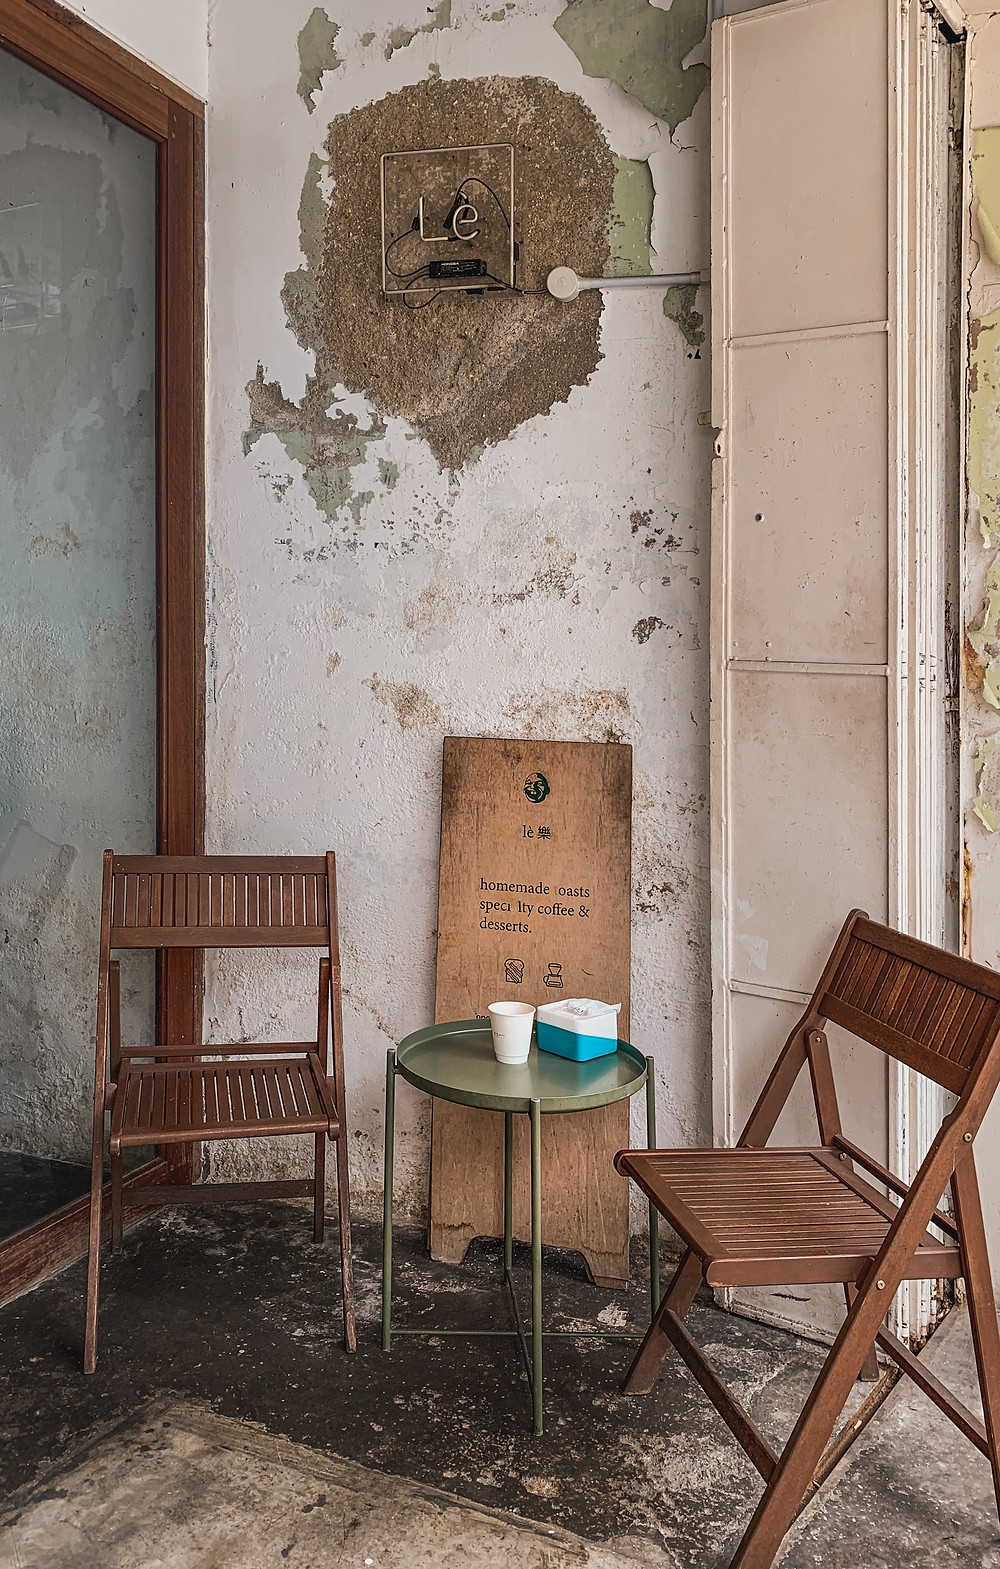 Rustic entrance and decor of Le楽 Cafe, Penang, RollingBear Travels photography.